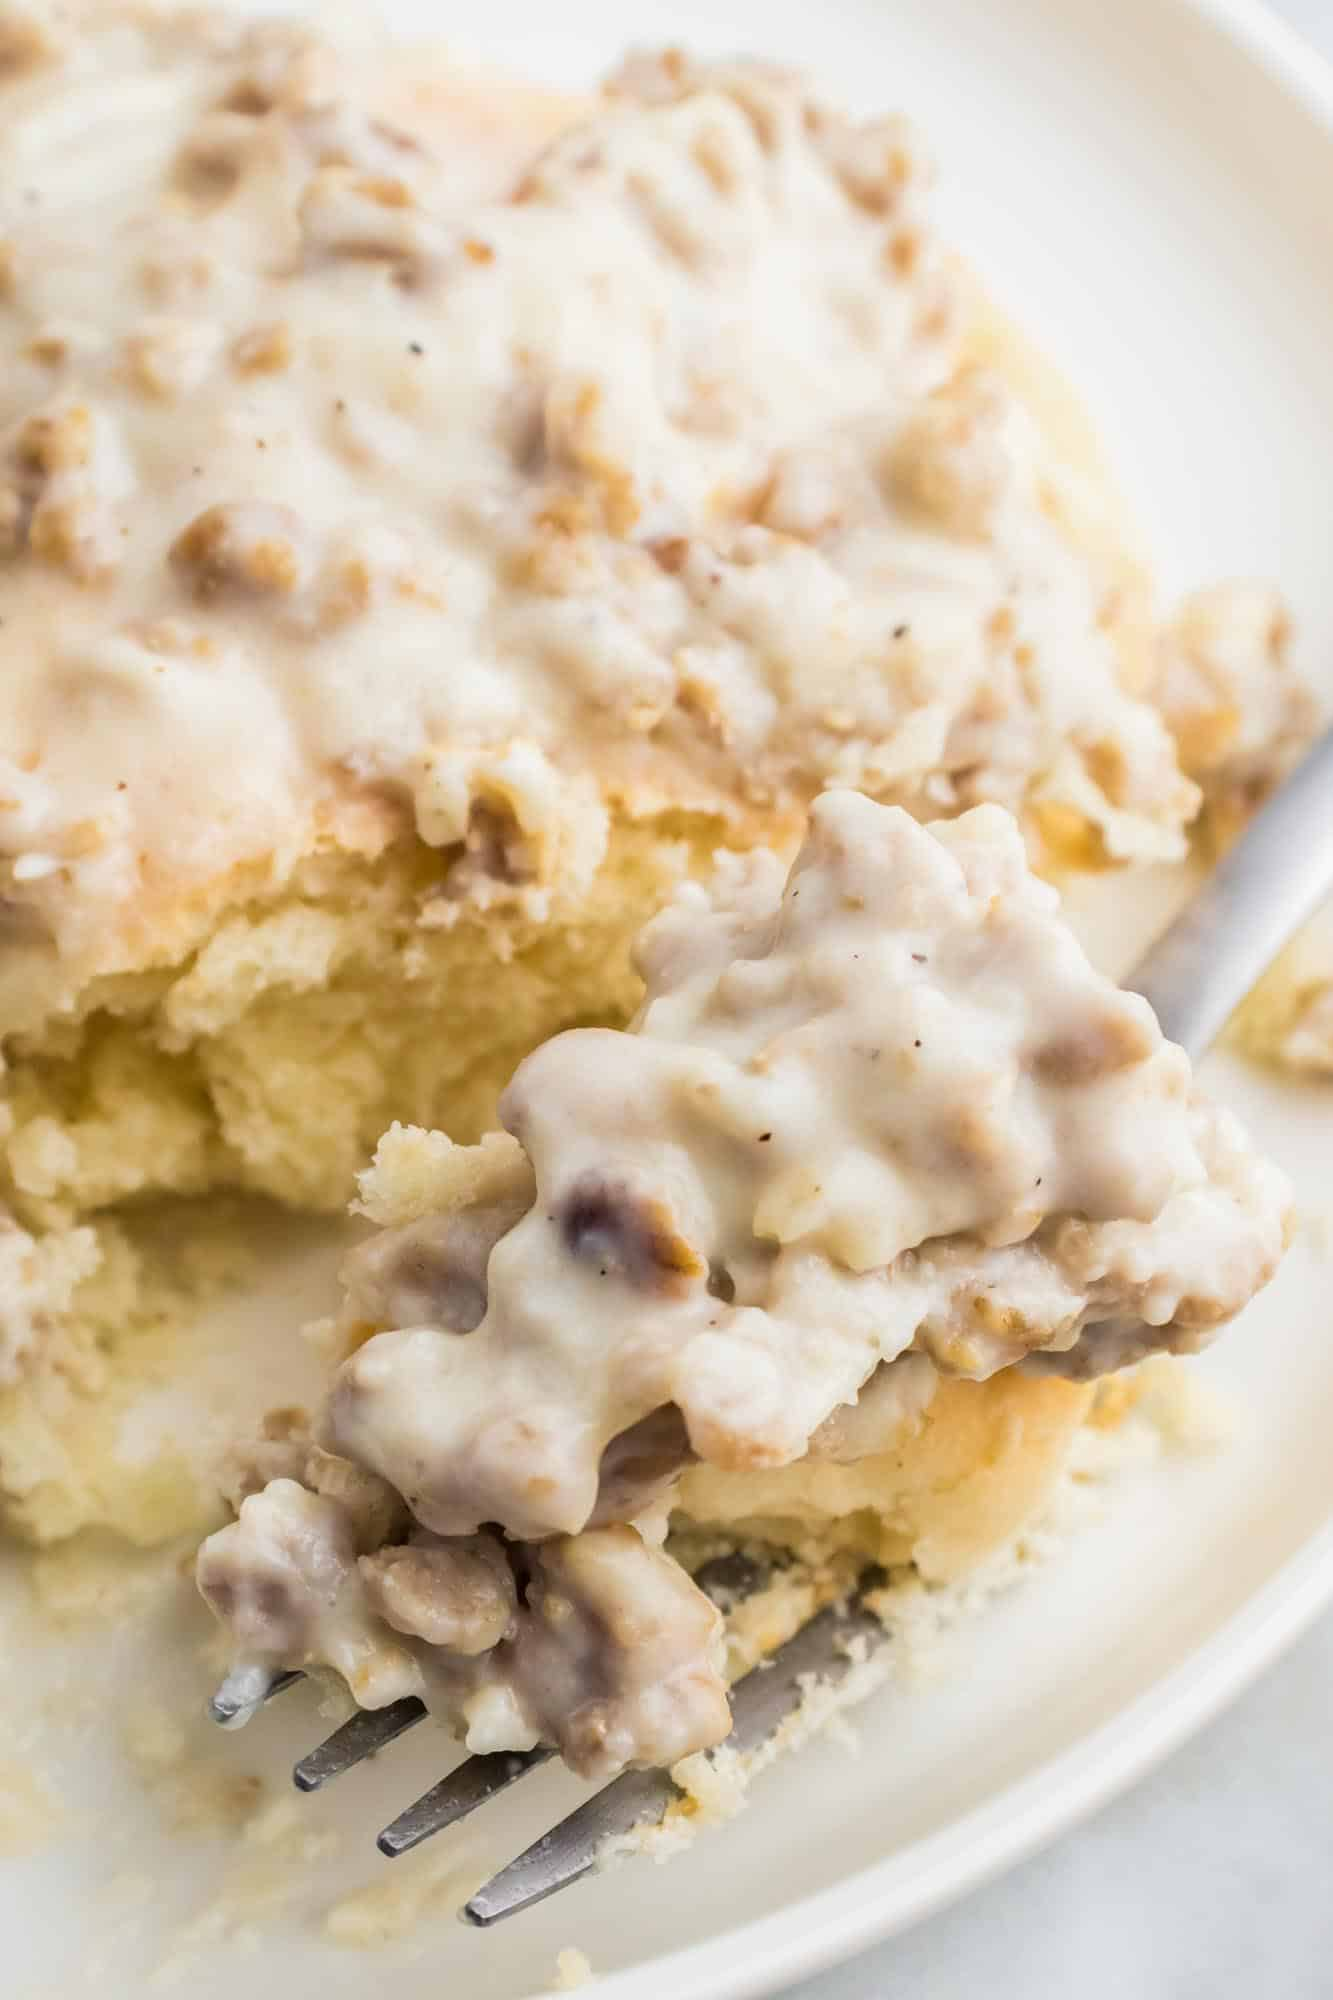 Sausage gravy on a biscuit and a fork to eat